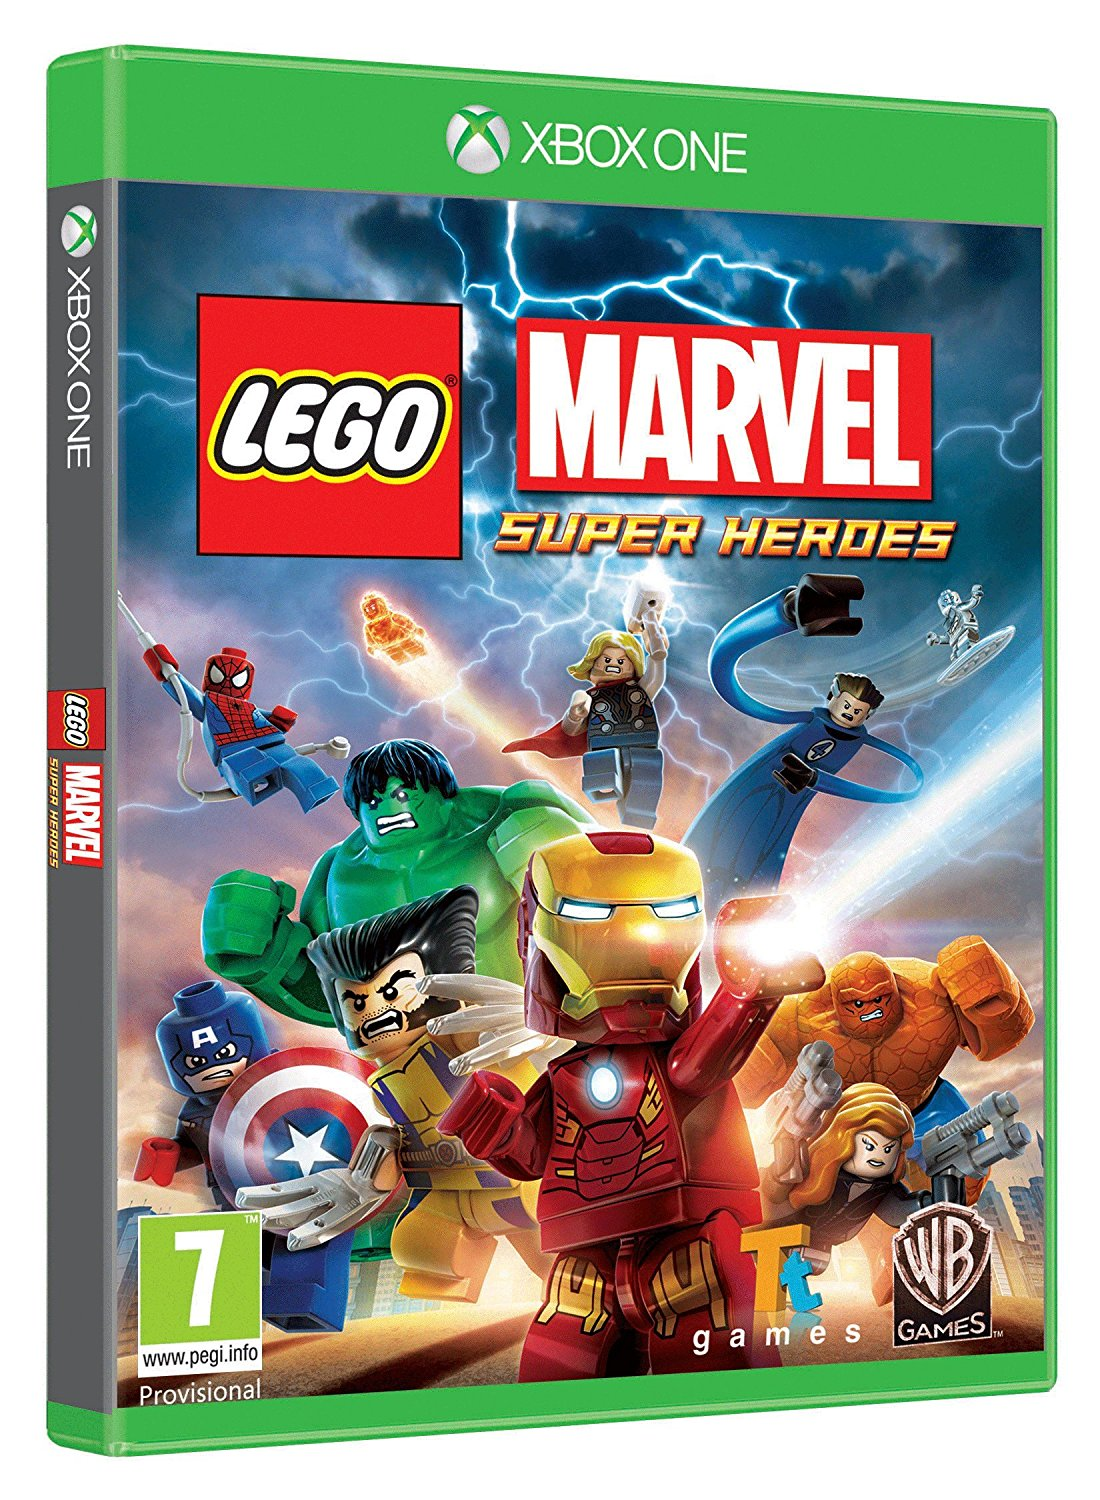 Lego Marvel Super Heroes - Xbox One